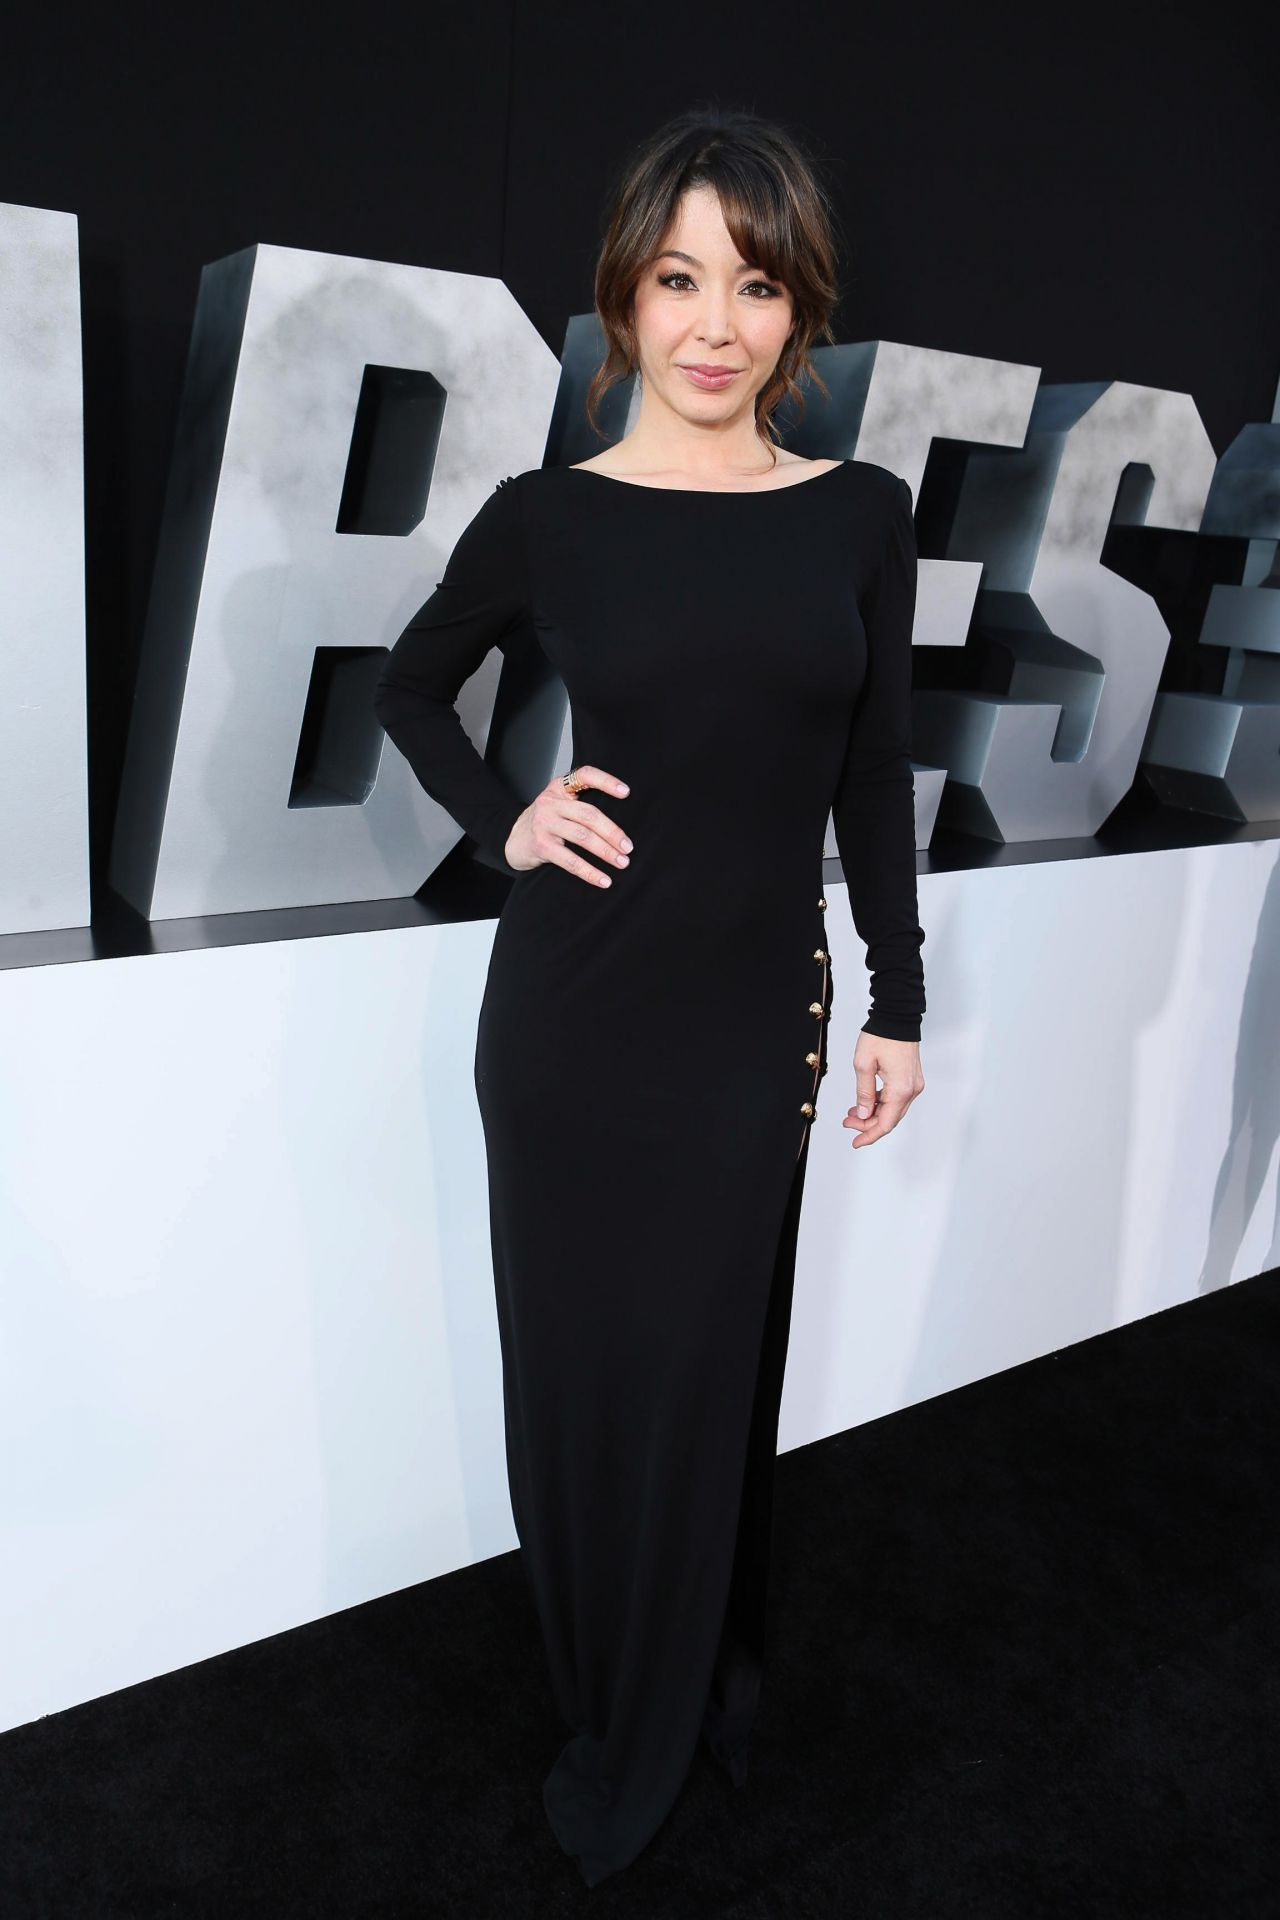 Katherine Castro – 'The Expendables 3′ Premiere in Los Angeles